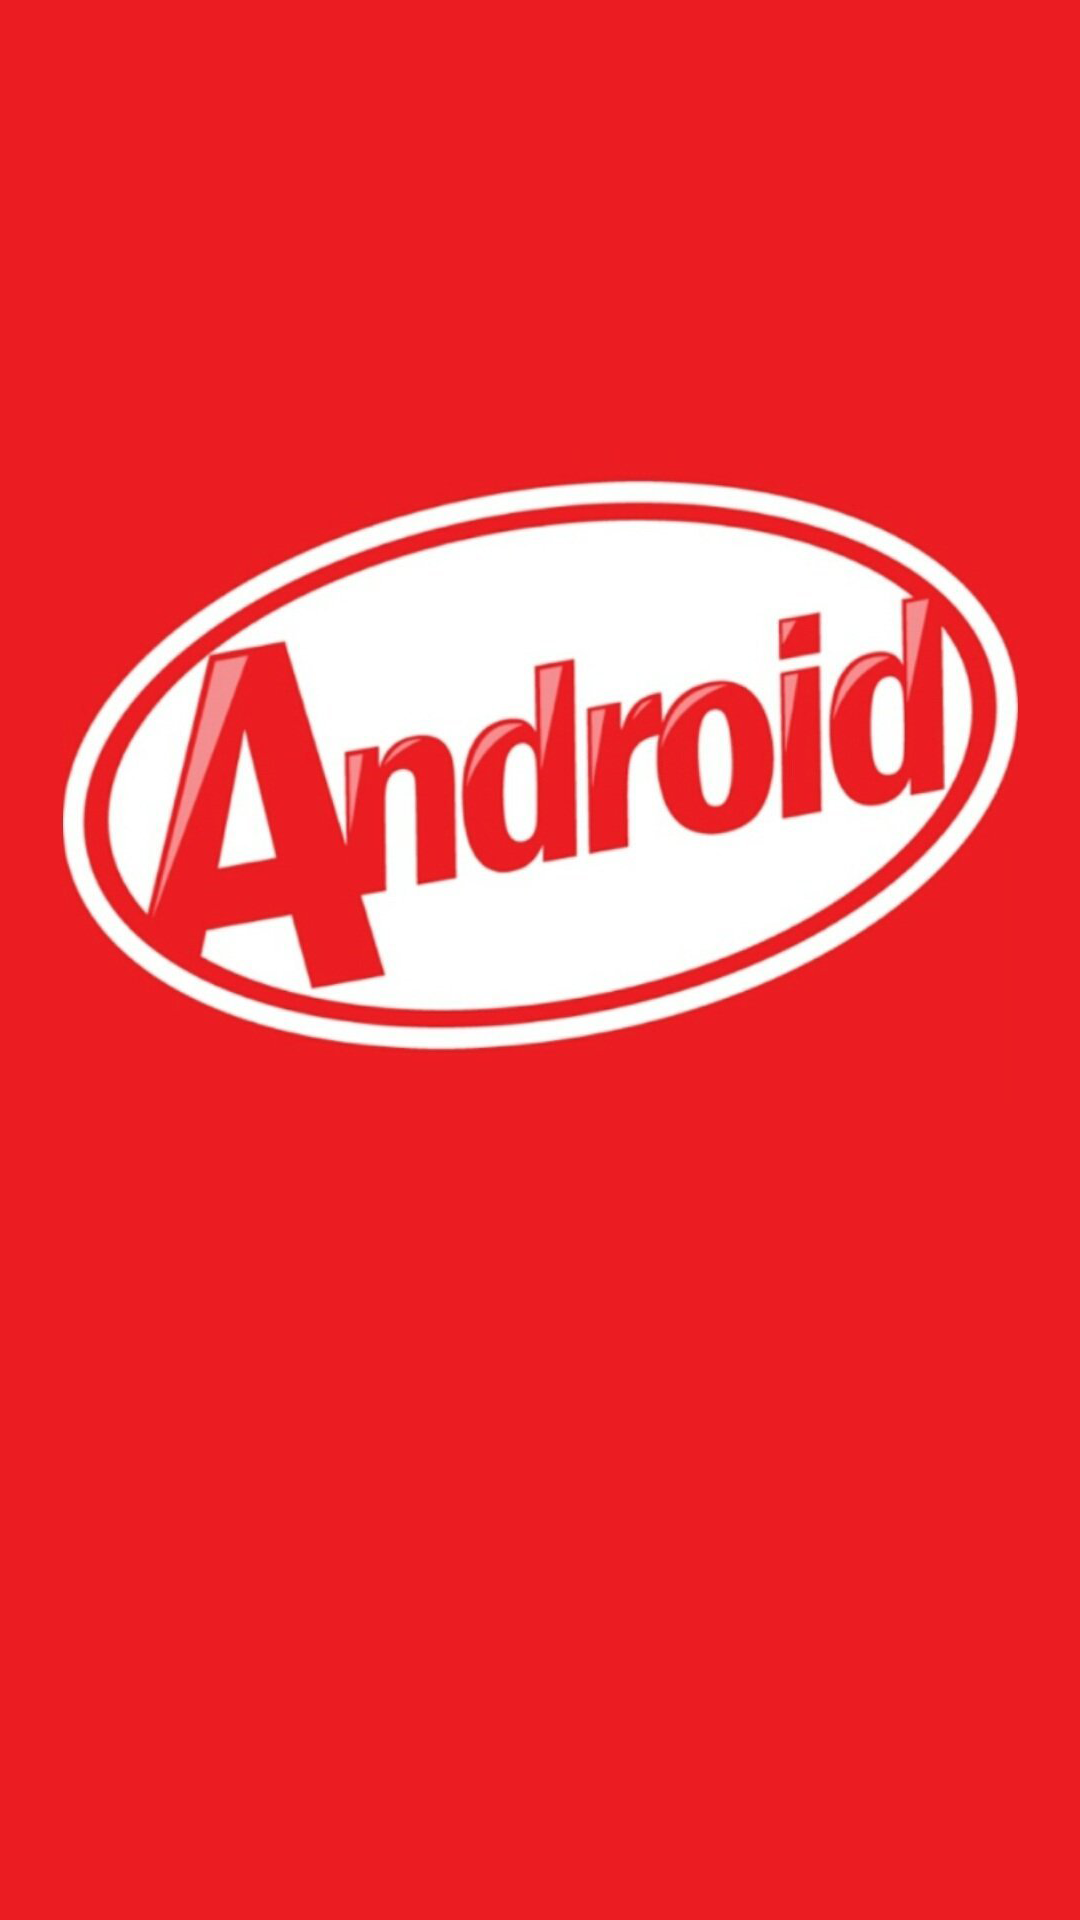 Androidロック画面壁紙hd Androidキットカットの壁紙 1080x19 Wallpapertip